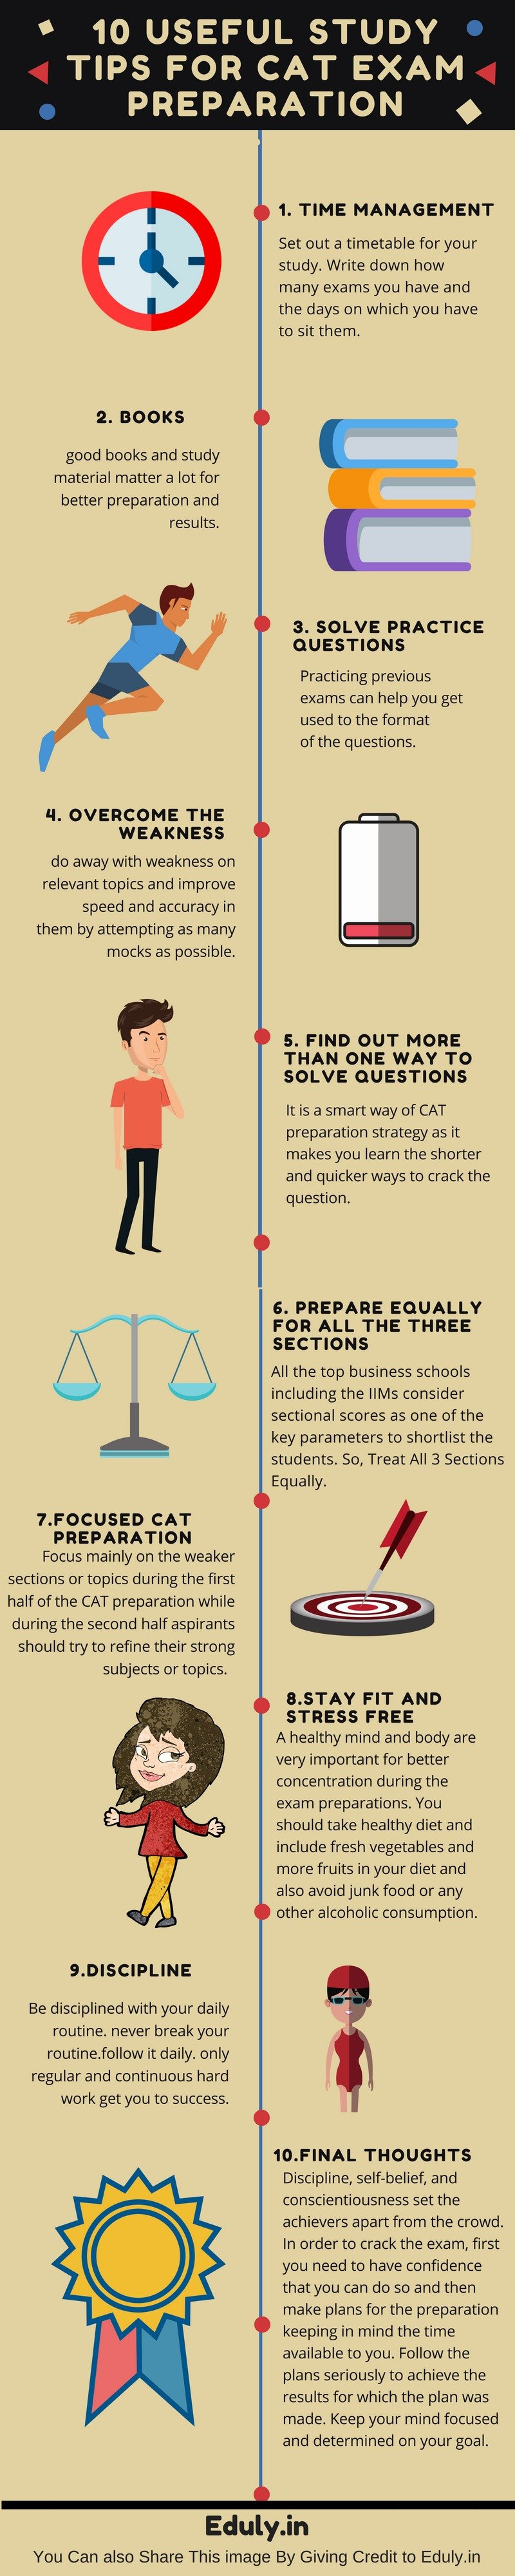 10 Useful Study Tips For the CAT